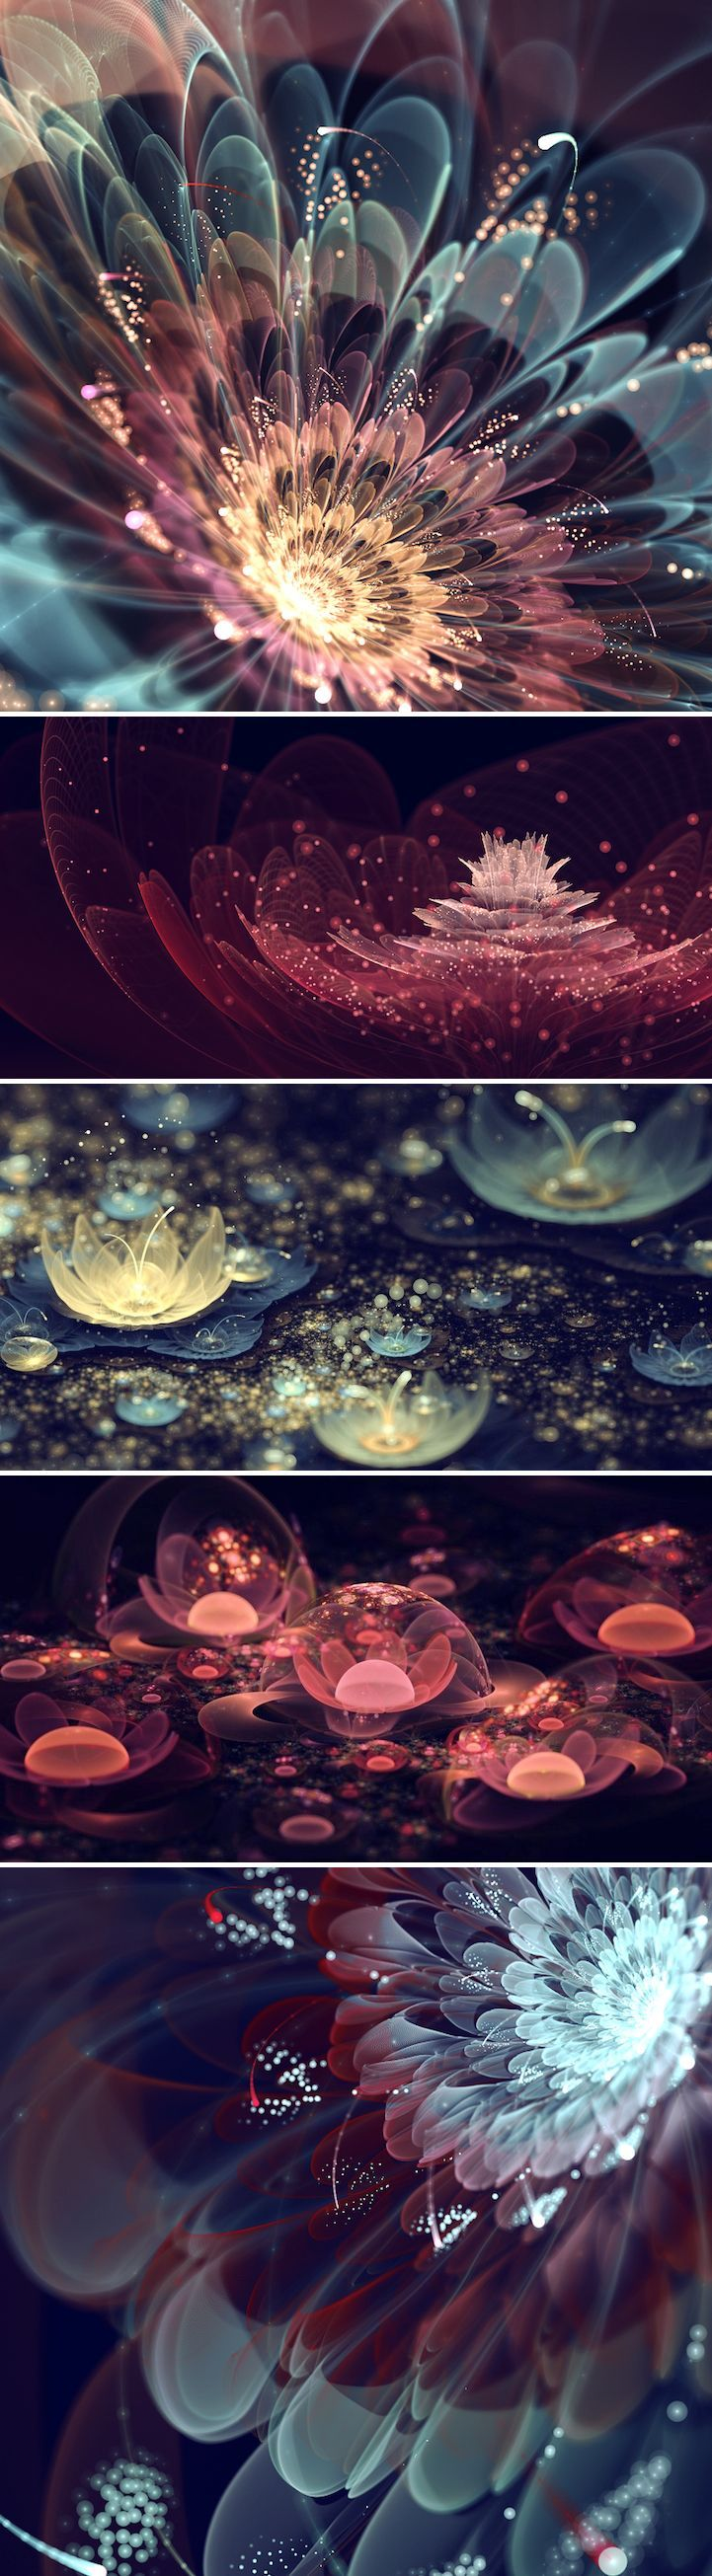 Italy-born artist Silvia Cordedda creates extraordinarily beautiful fractal flowers that look like they could only exist in our dreams or in a wonderfully magical world.